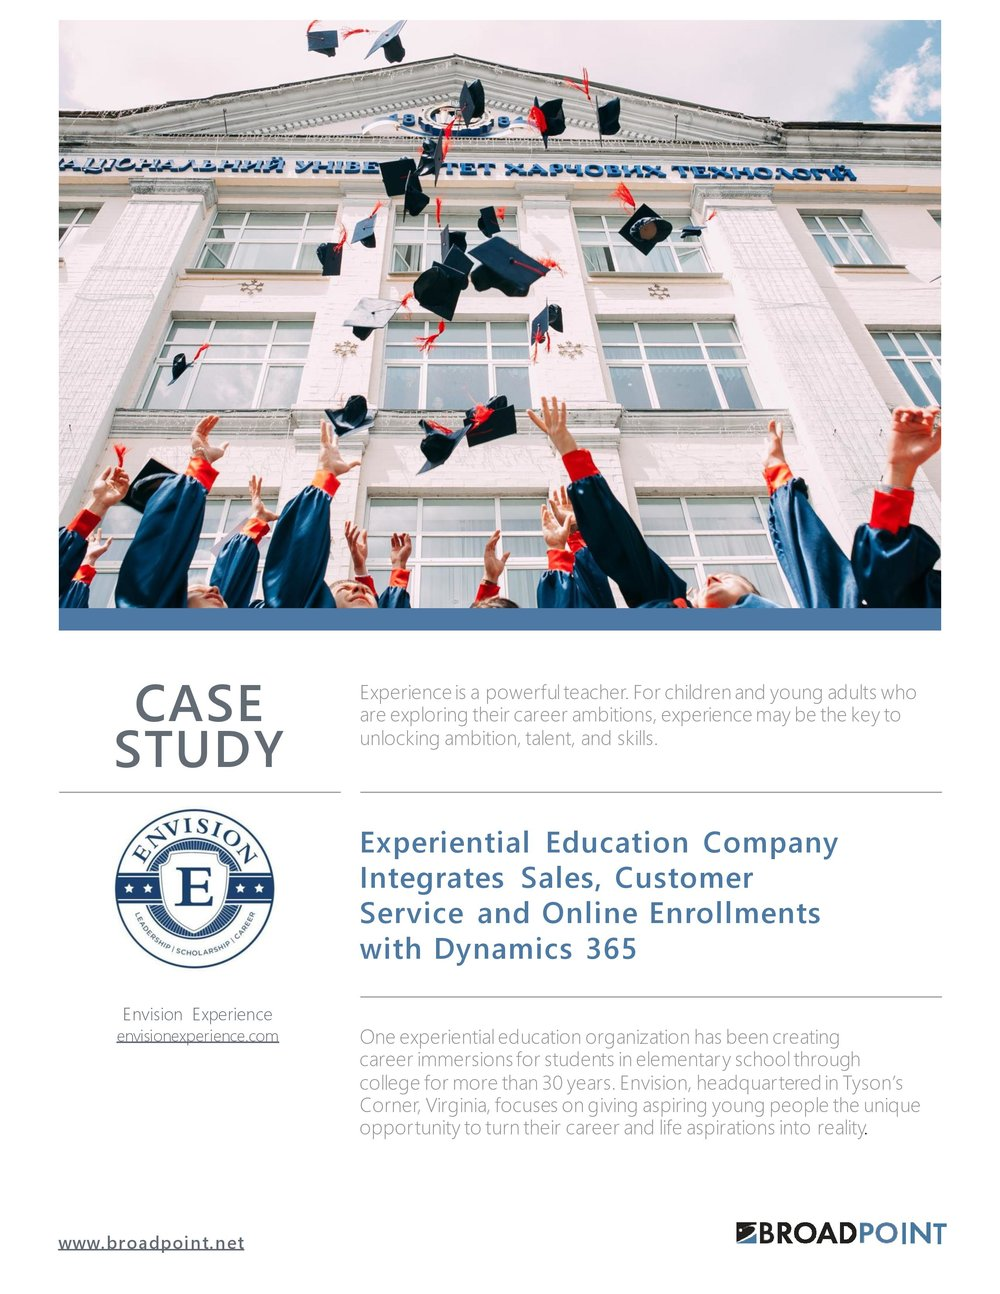 EnvisionCaseStudy-Mar29 (1)-page-001.jpg